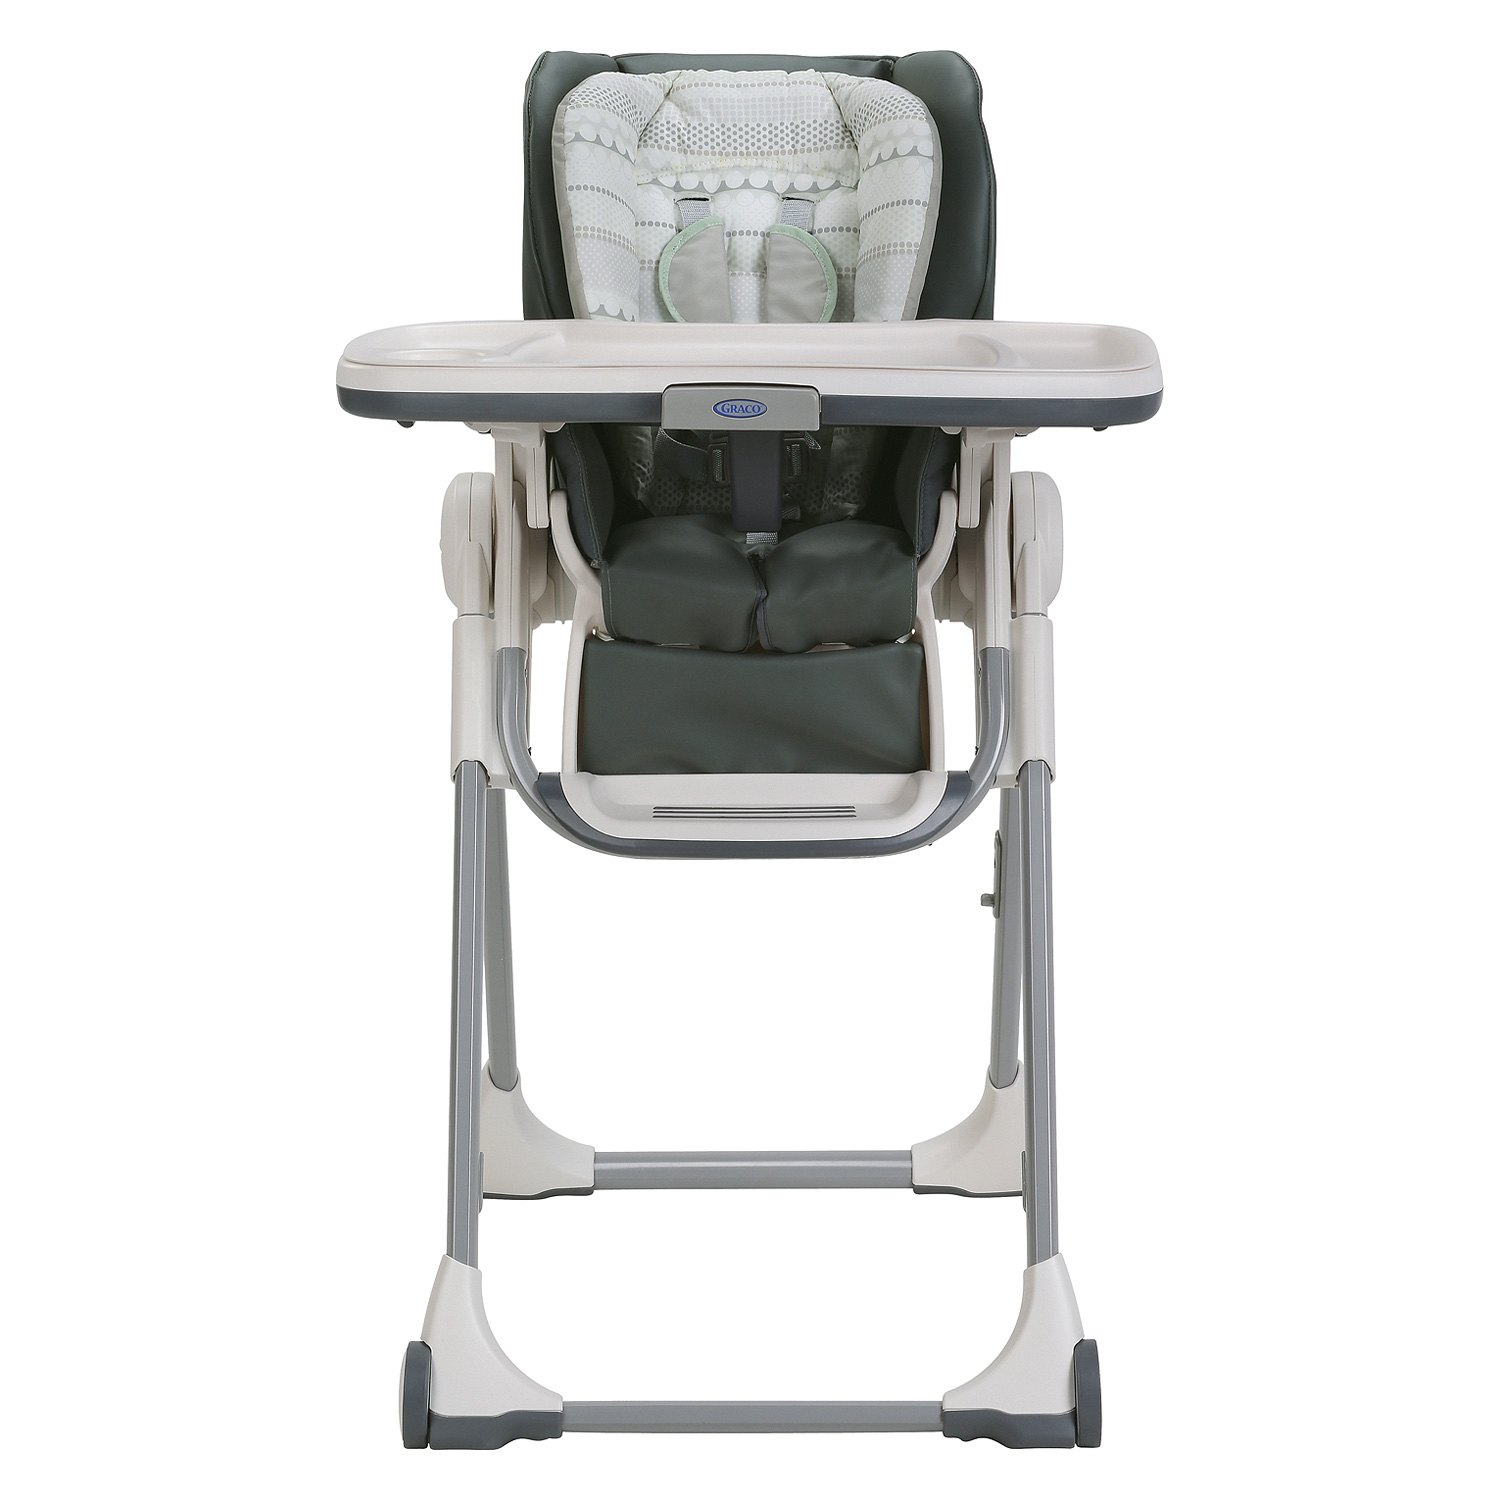 graco duodiner lx high chair party chairs best of rtty1